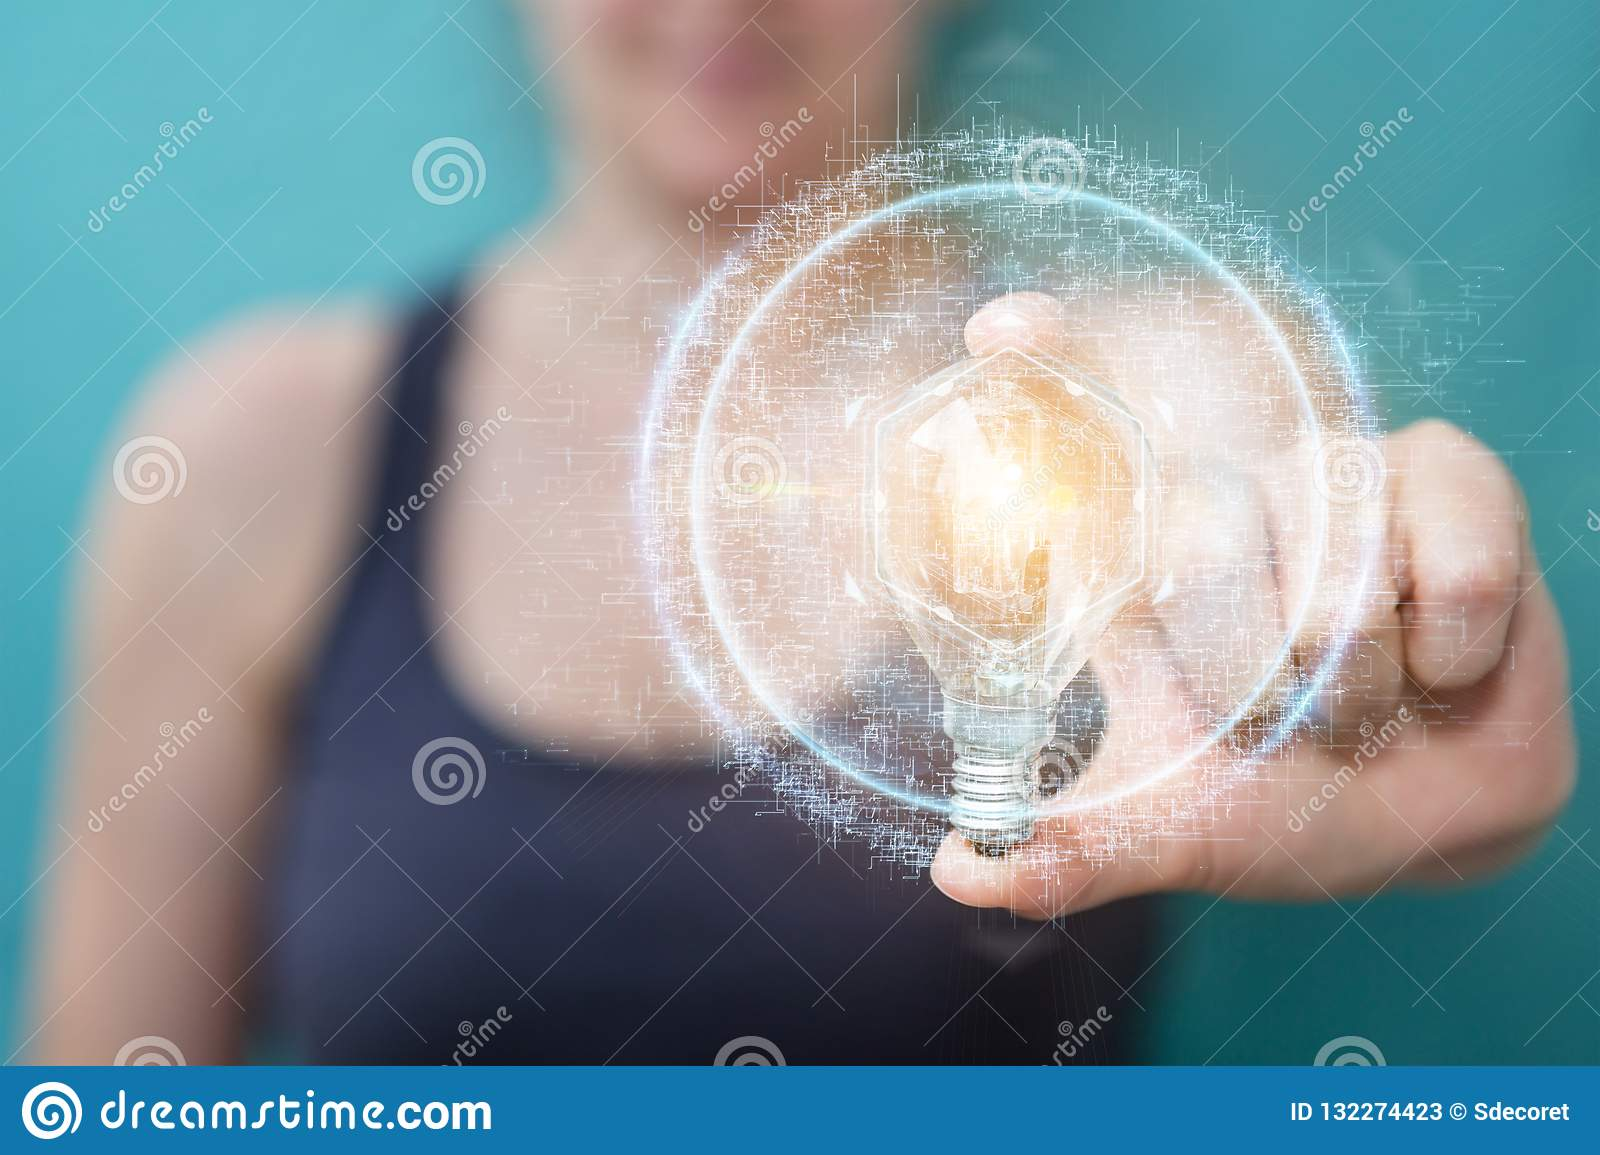 Businesswoman holding a lighbulb with connections in her hand 3D